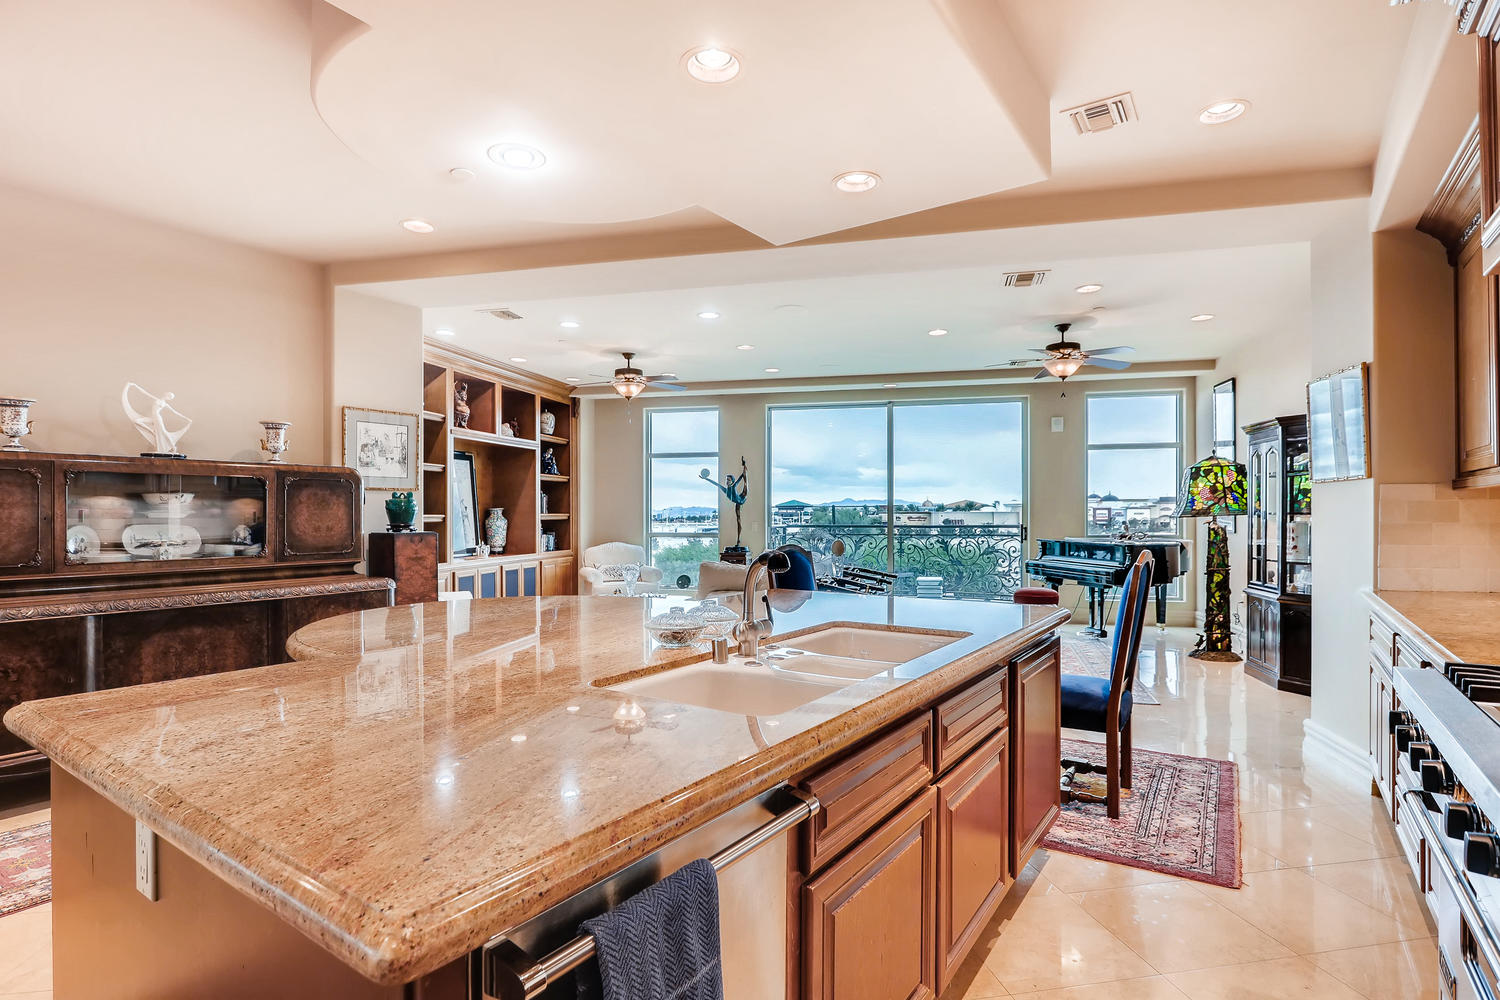 9101-alta-16-las-vegas-nv-large-005-1-kitchen-1500×1000-72dpi